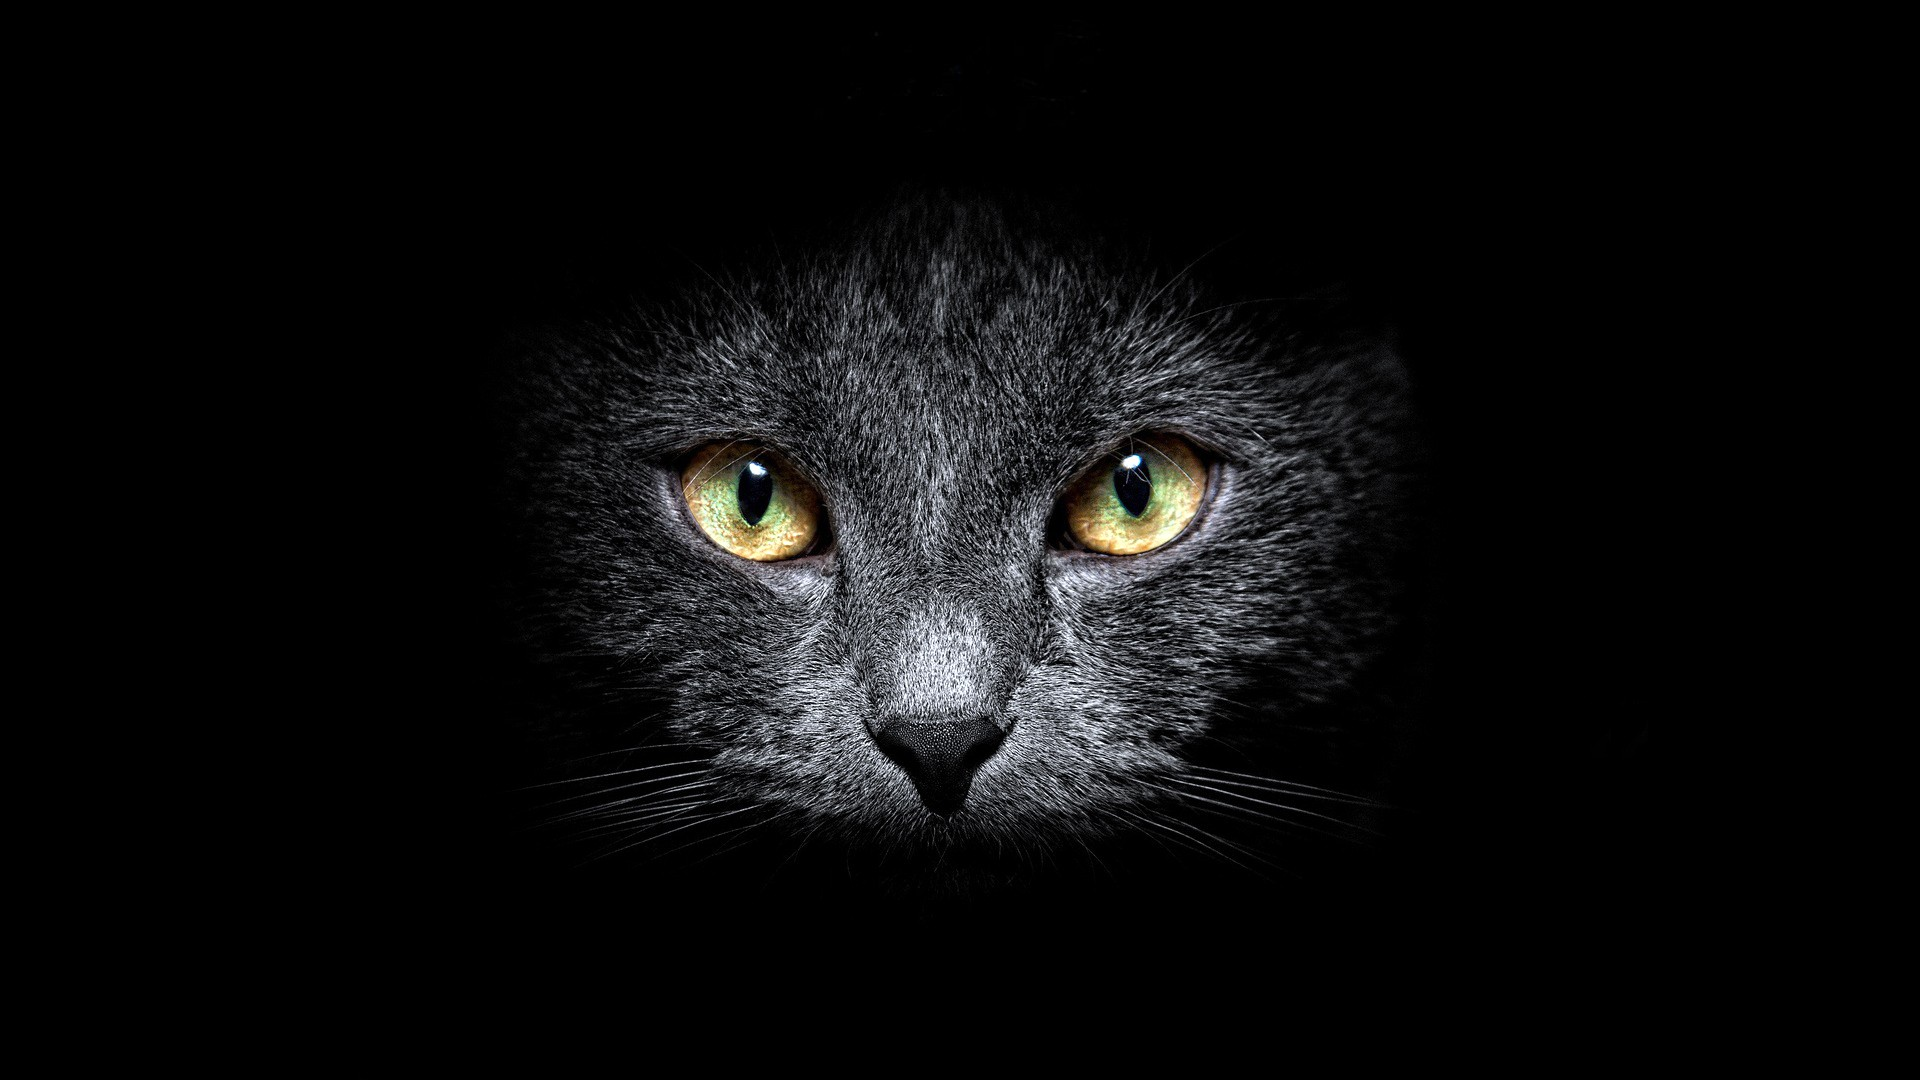 Black Cat Hd Wallpaper Background Image 1920x1080 Id 321290